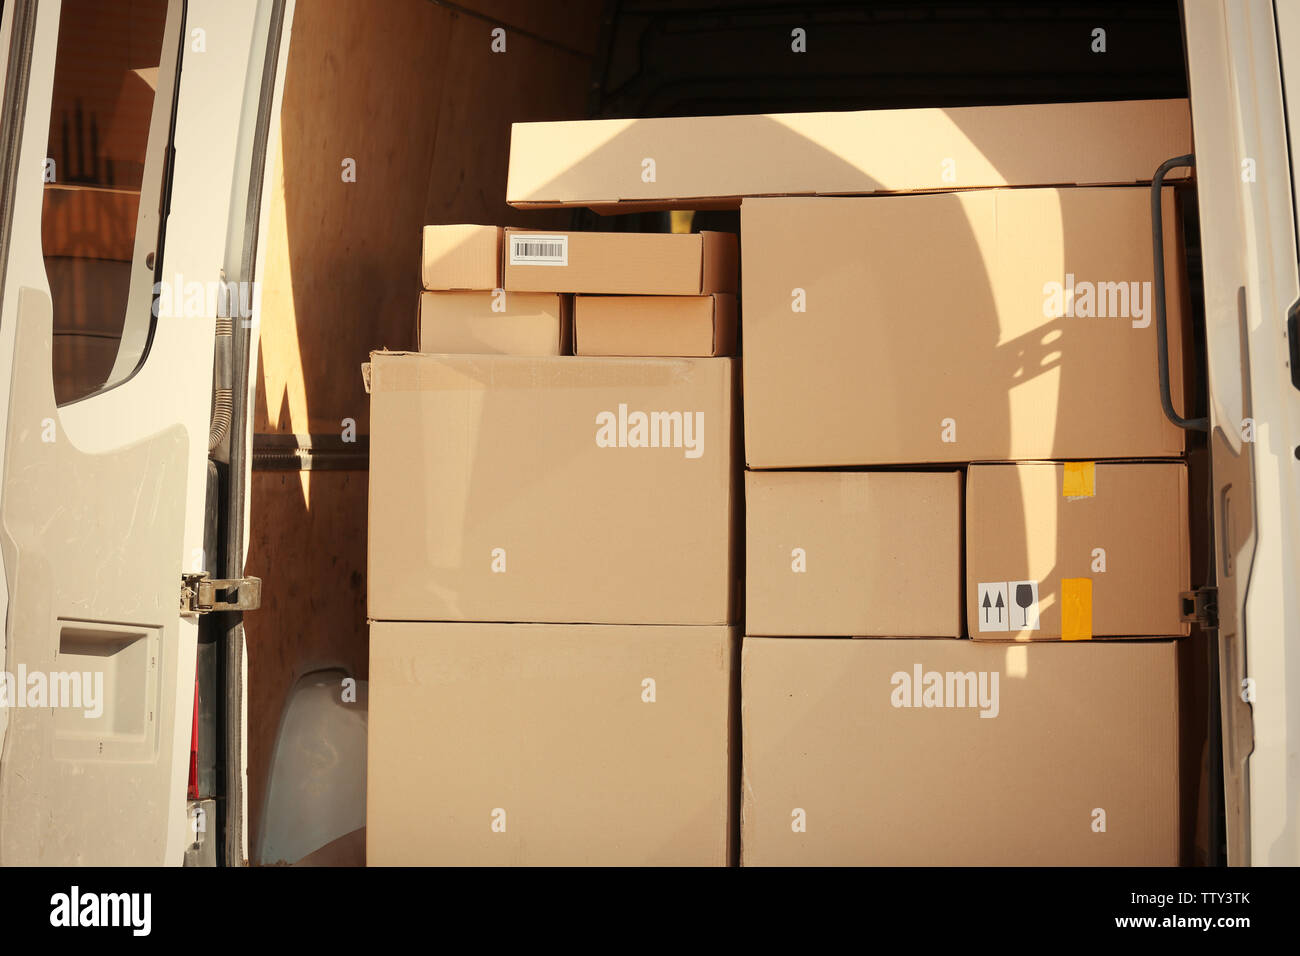 Delivery service van loaded with packages - Stock Image